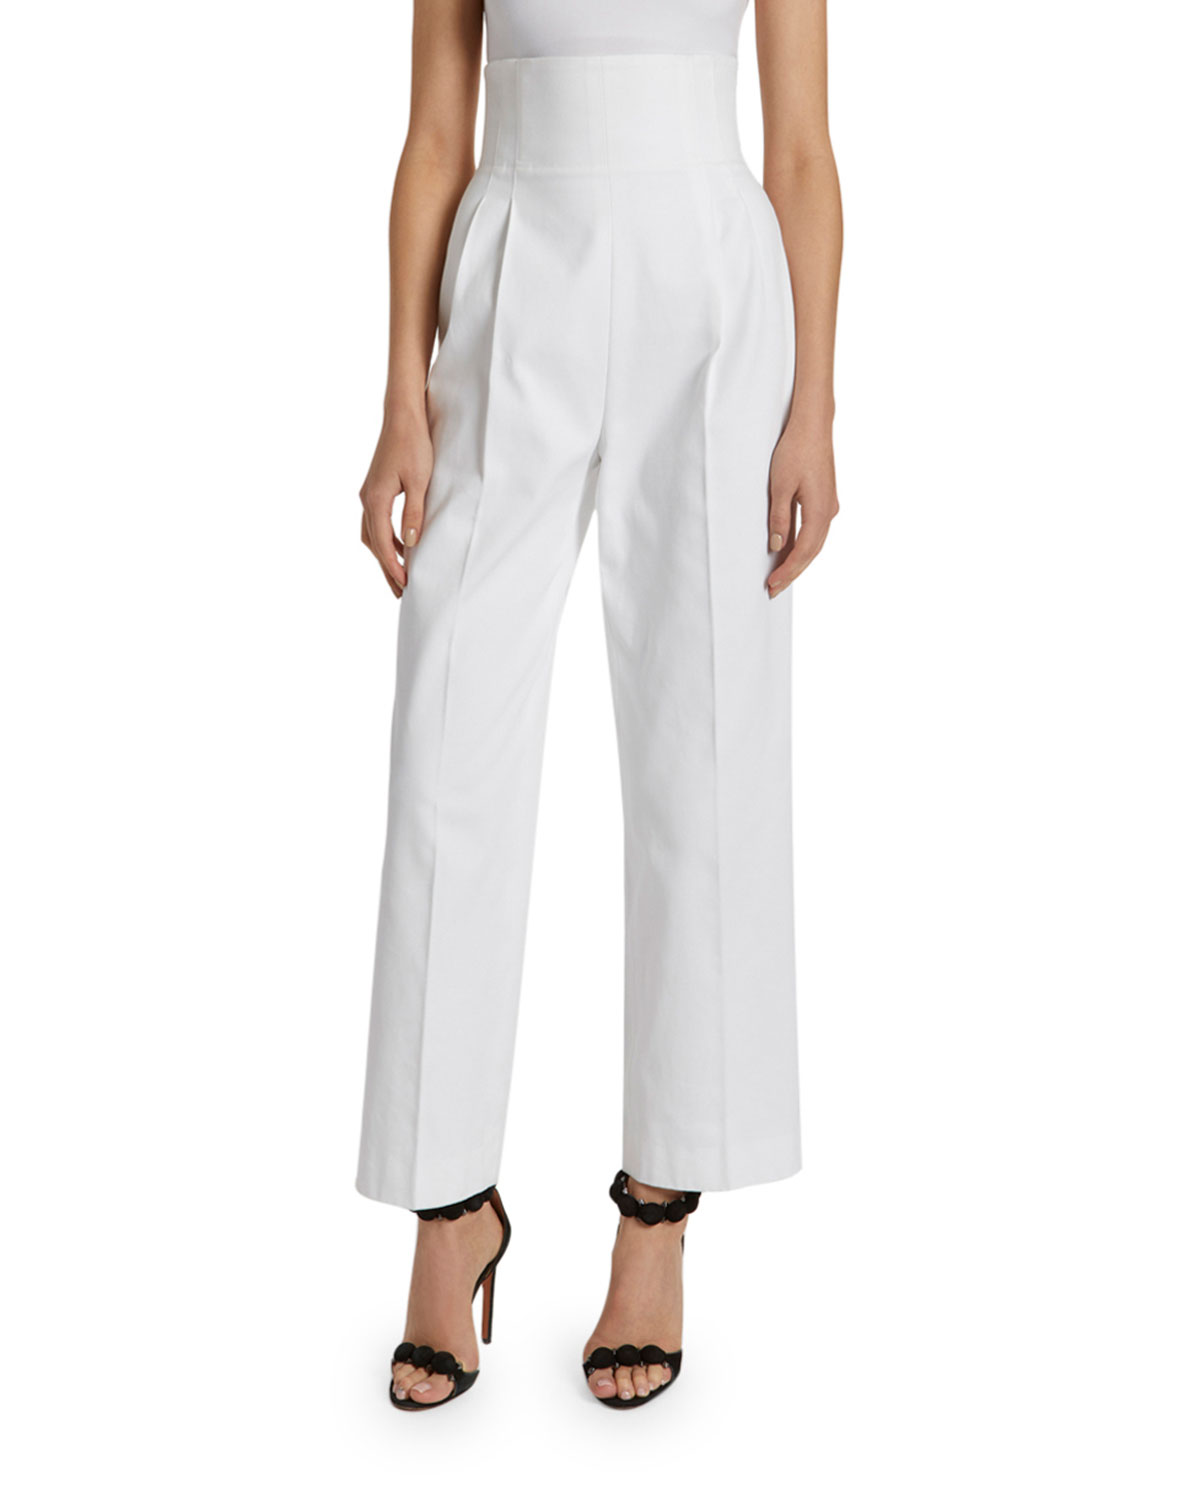 ALAIA Cotton High-Rise Crop Trouser